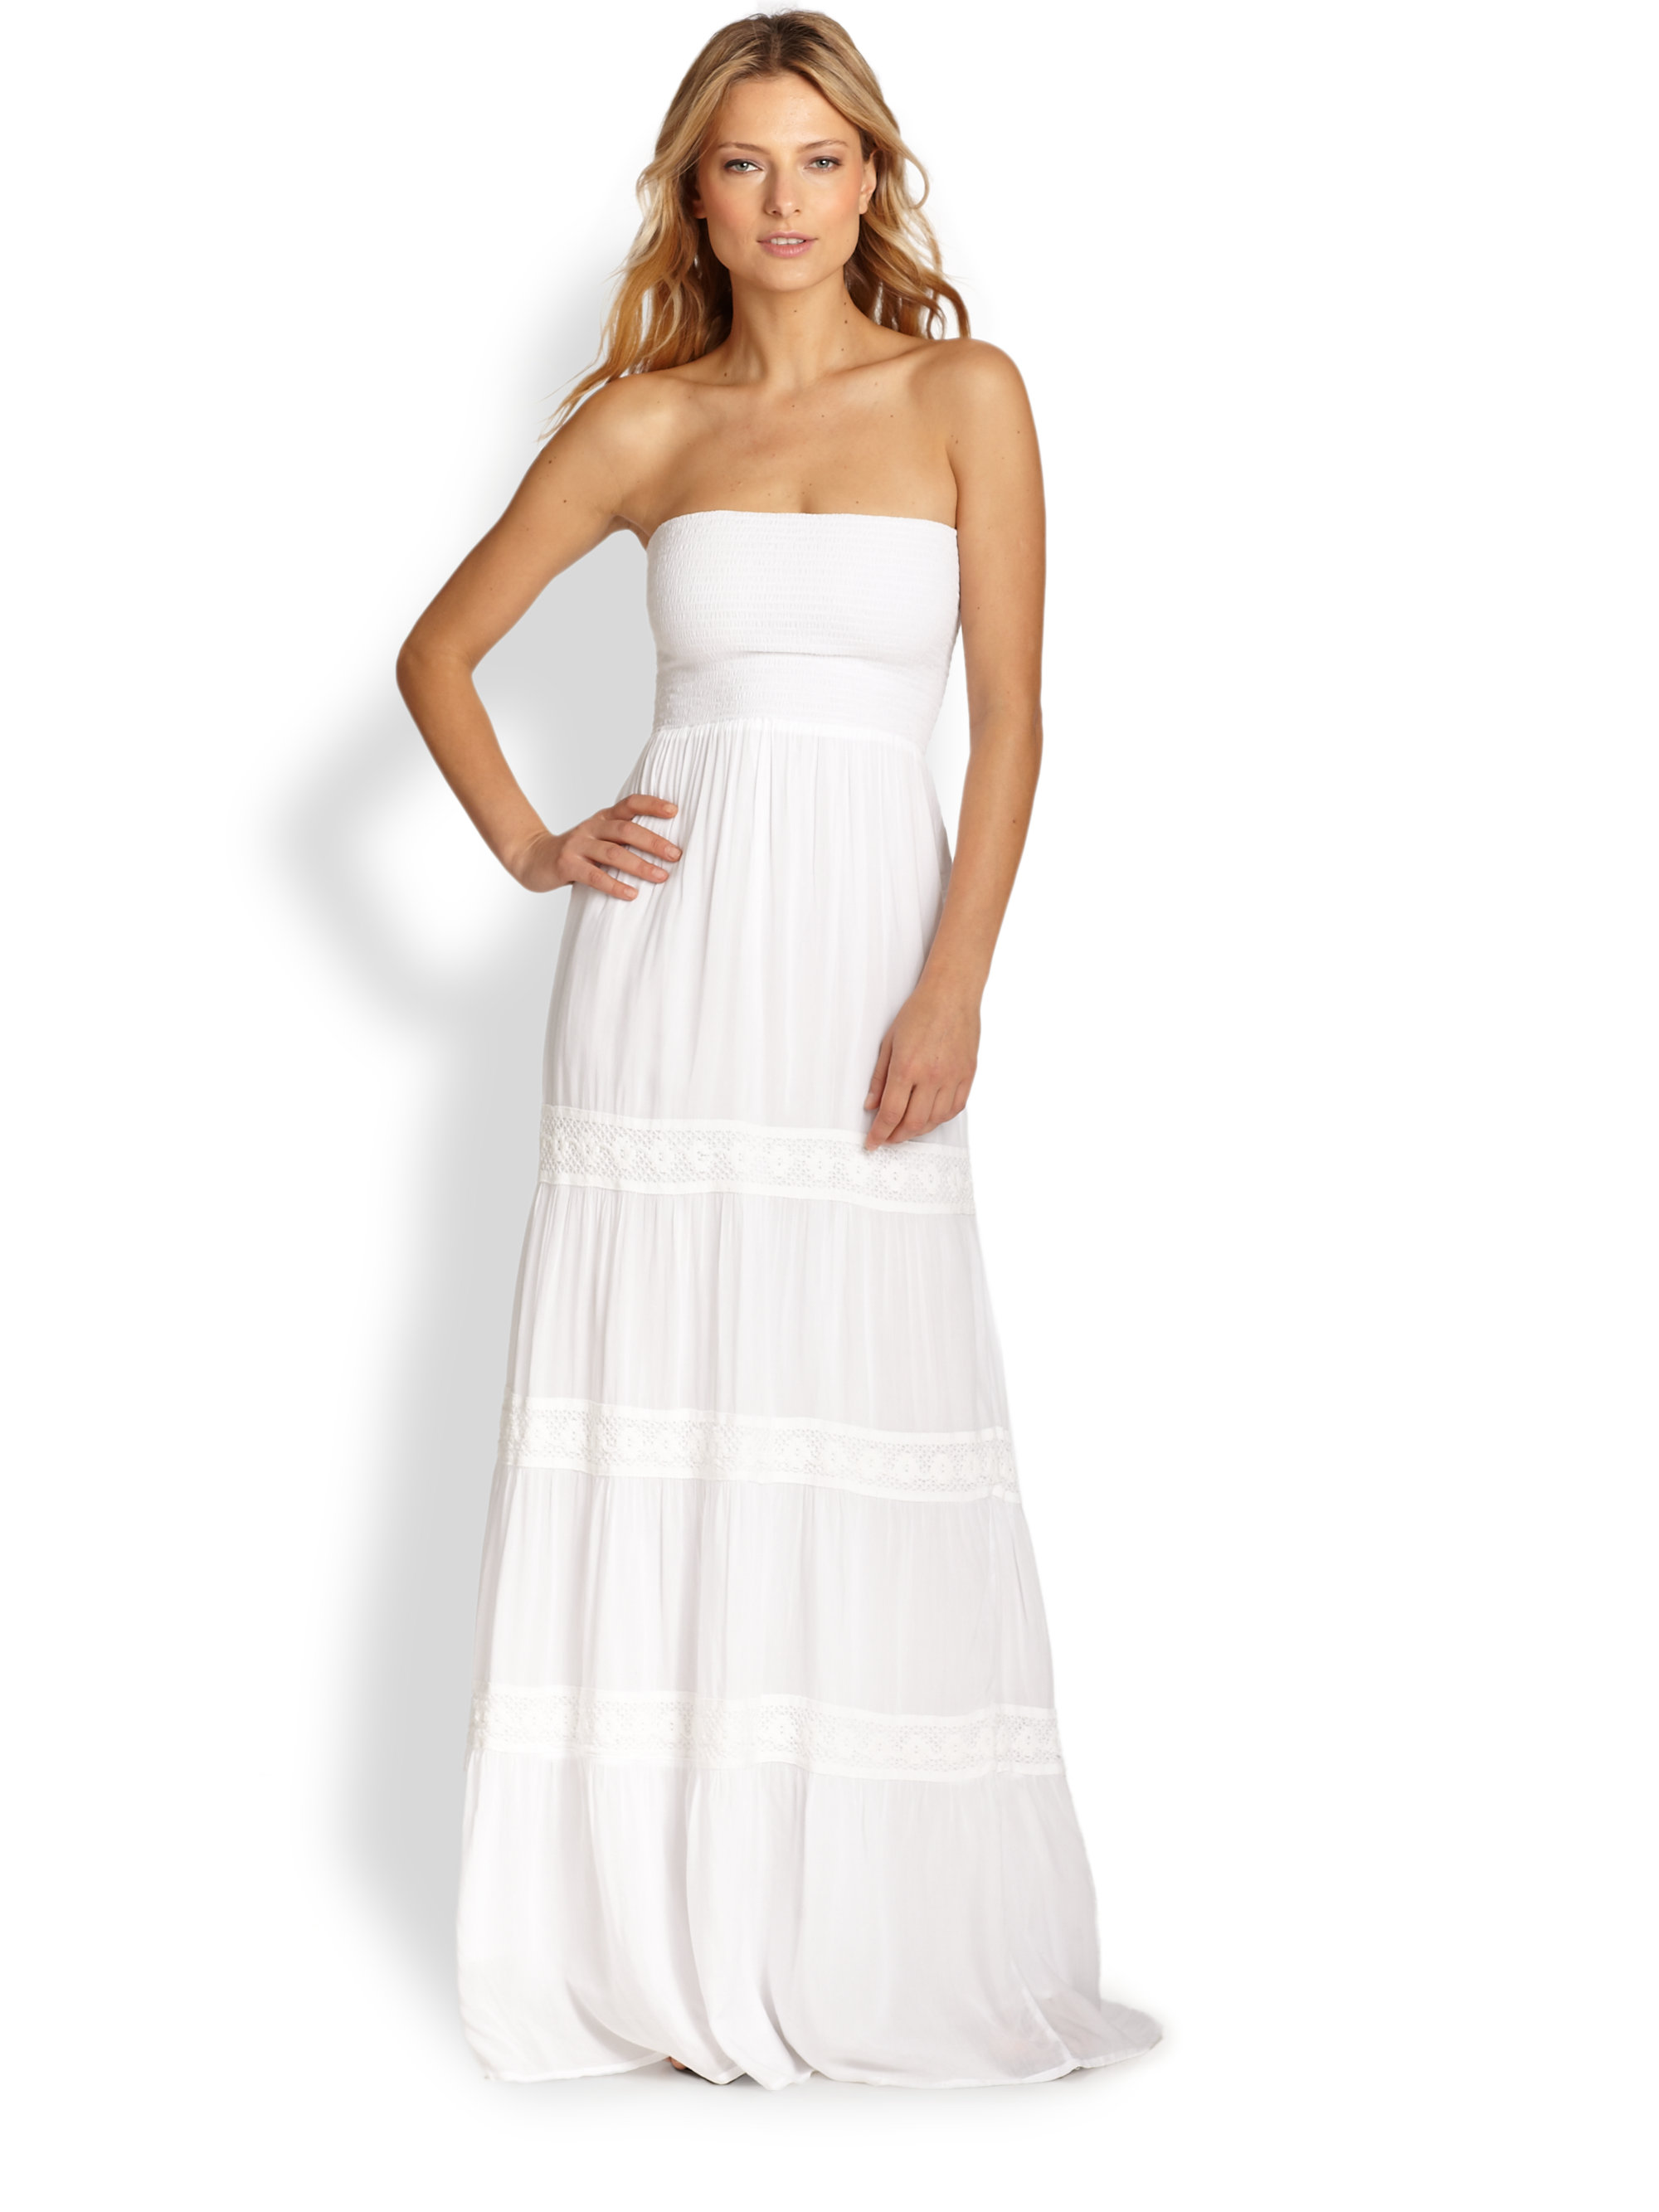 Melissa odabash Strapless Maxi Dress in White | Lyst